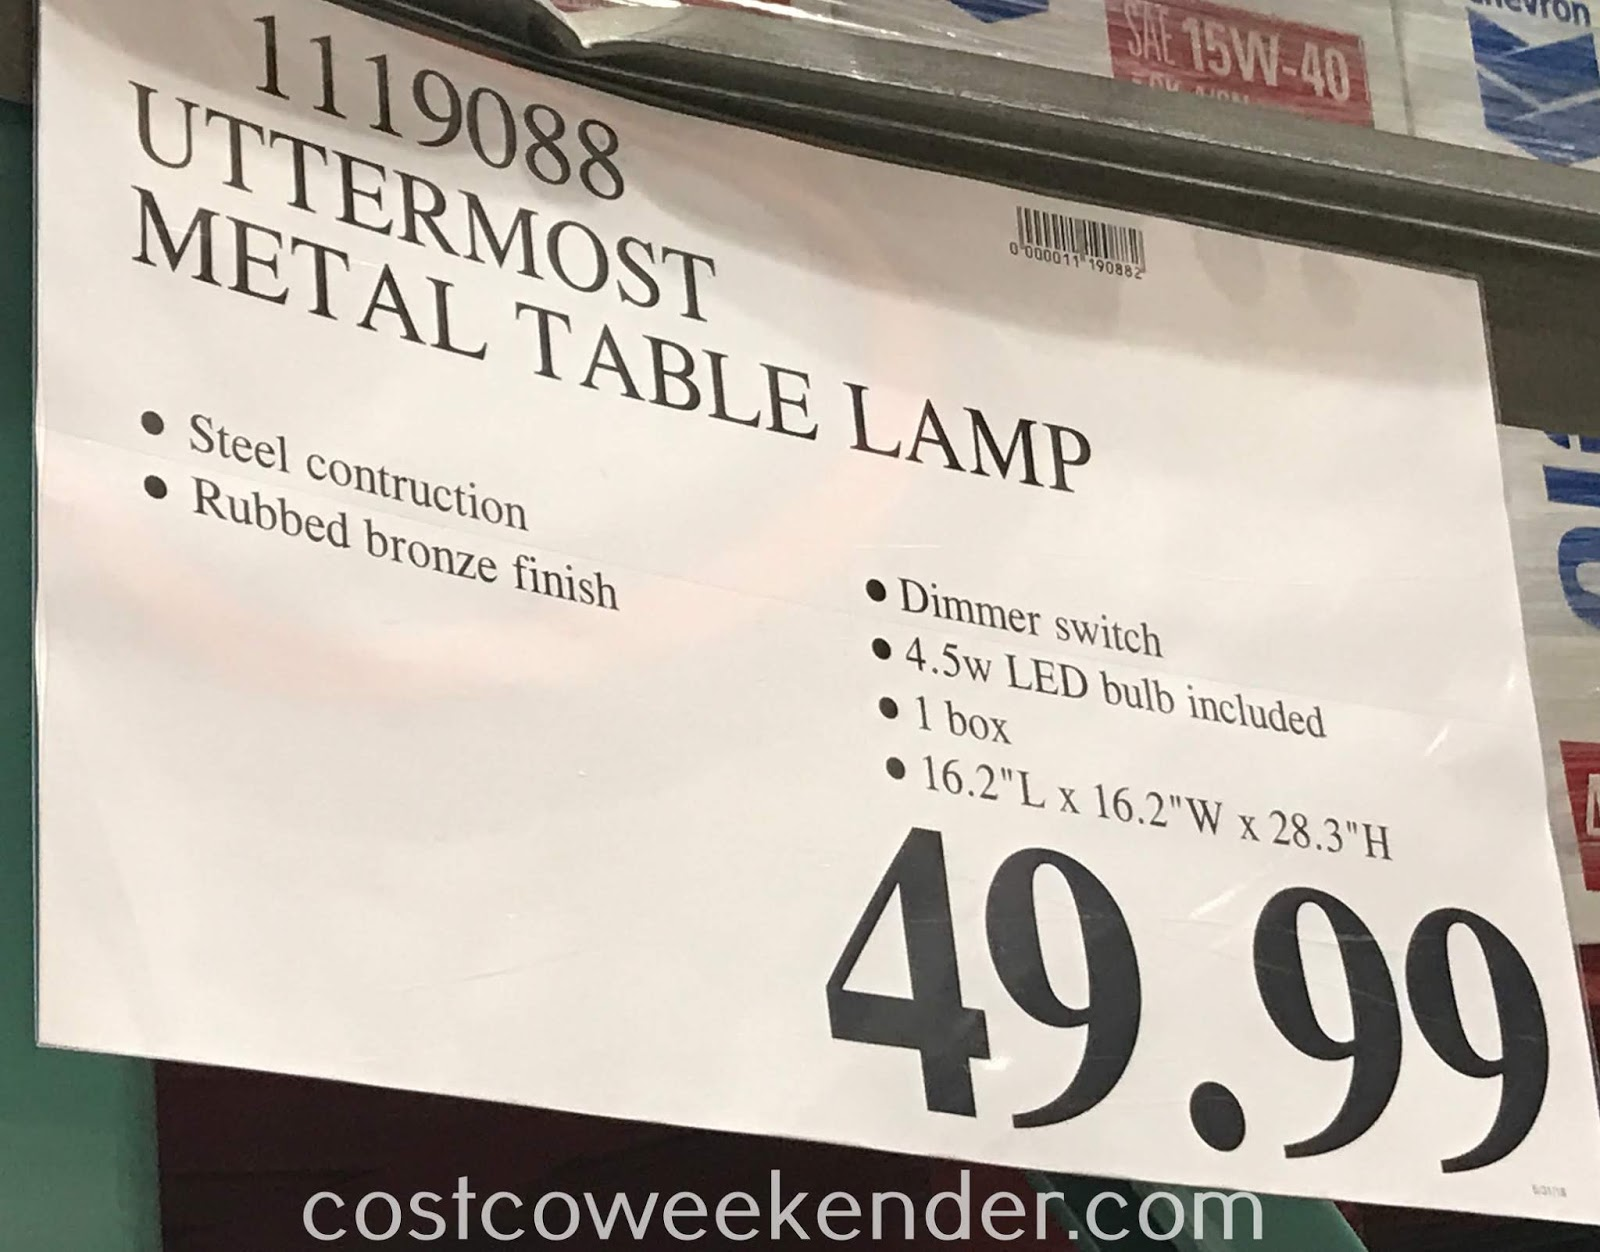 Deal for the Uttermost Metal Table Lamp at Costco